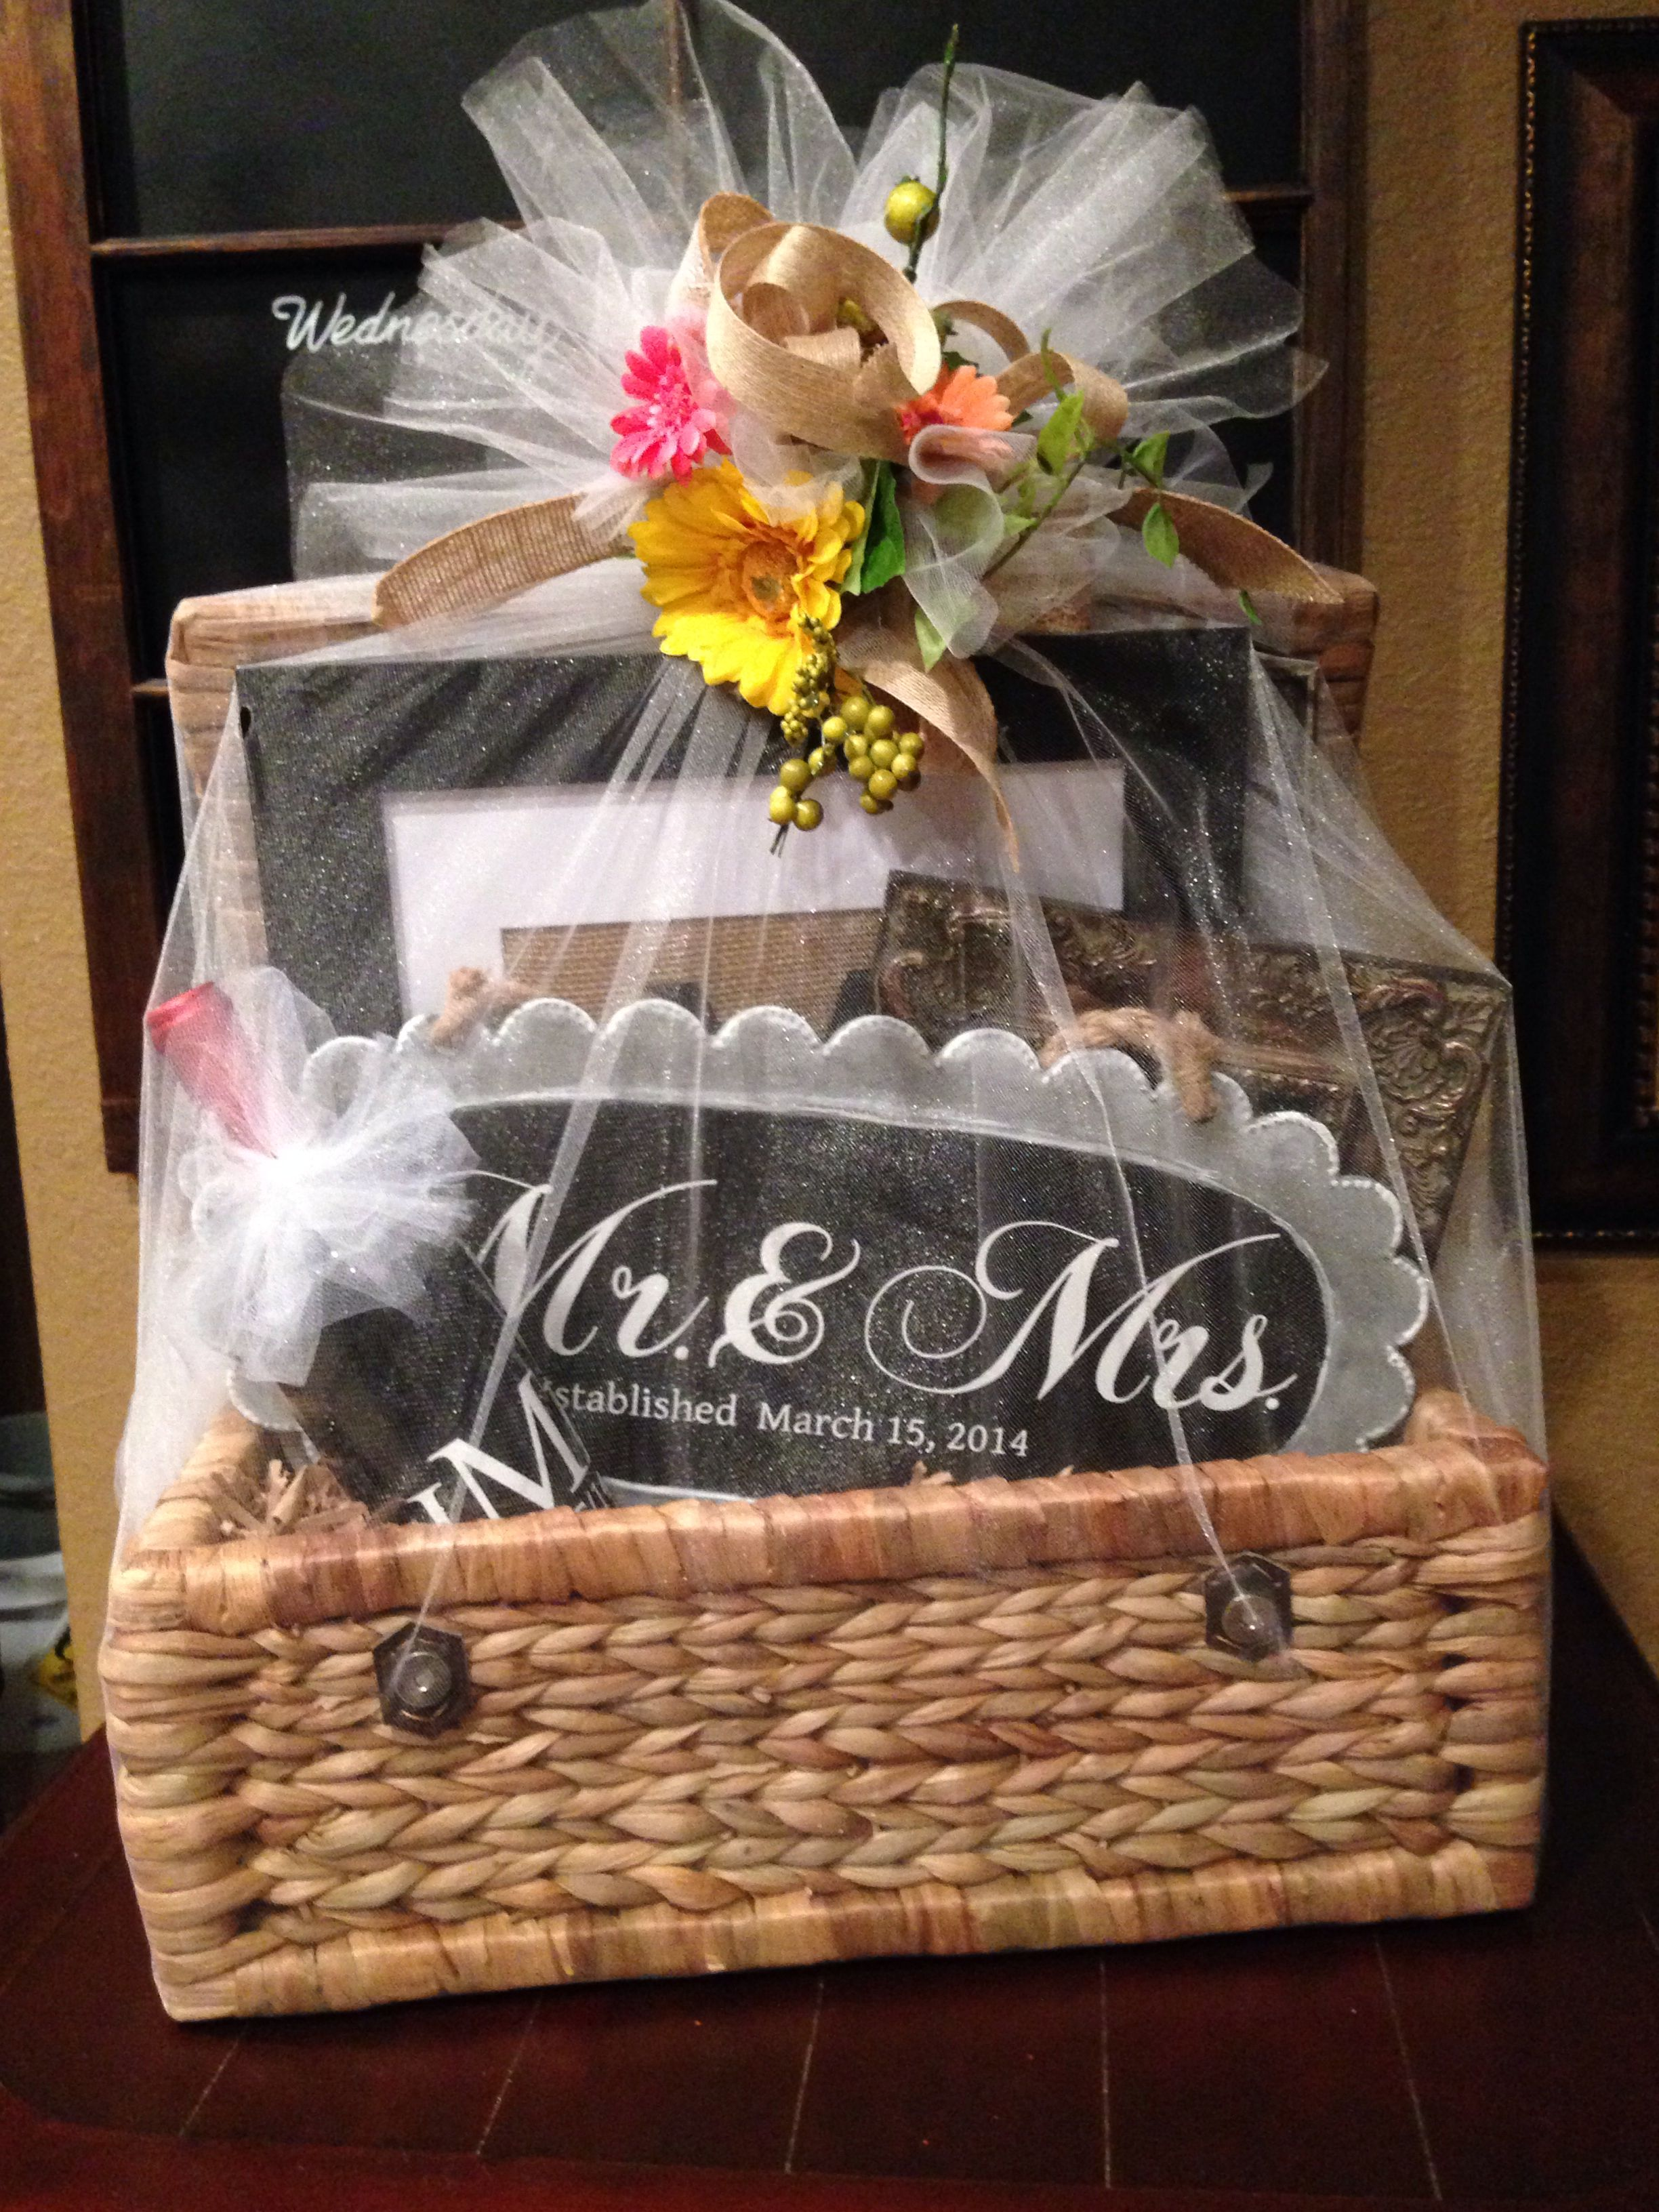 Wedding Gift Basket Filed With Personalized Gifts Made With My Silhouette Wrapped With Tulle Wedding Gift Wrapping Wedding Gift Baskets Bridal Shower Baskets